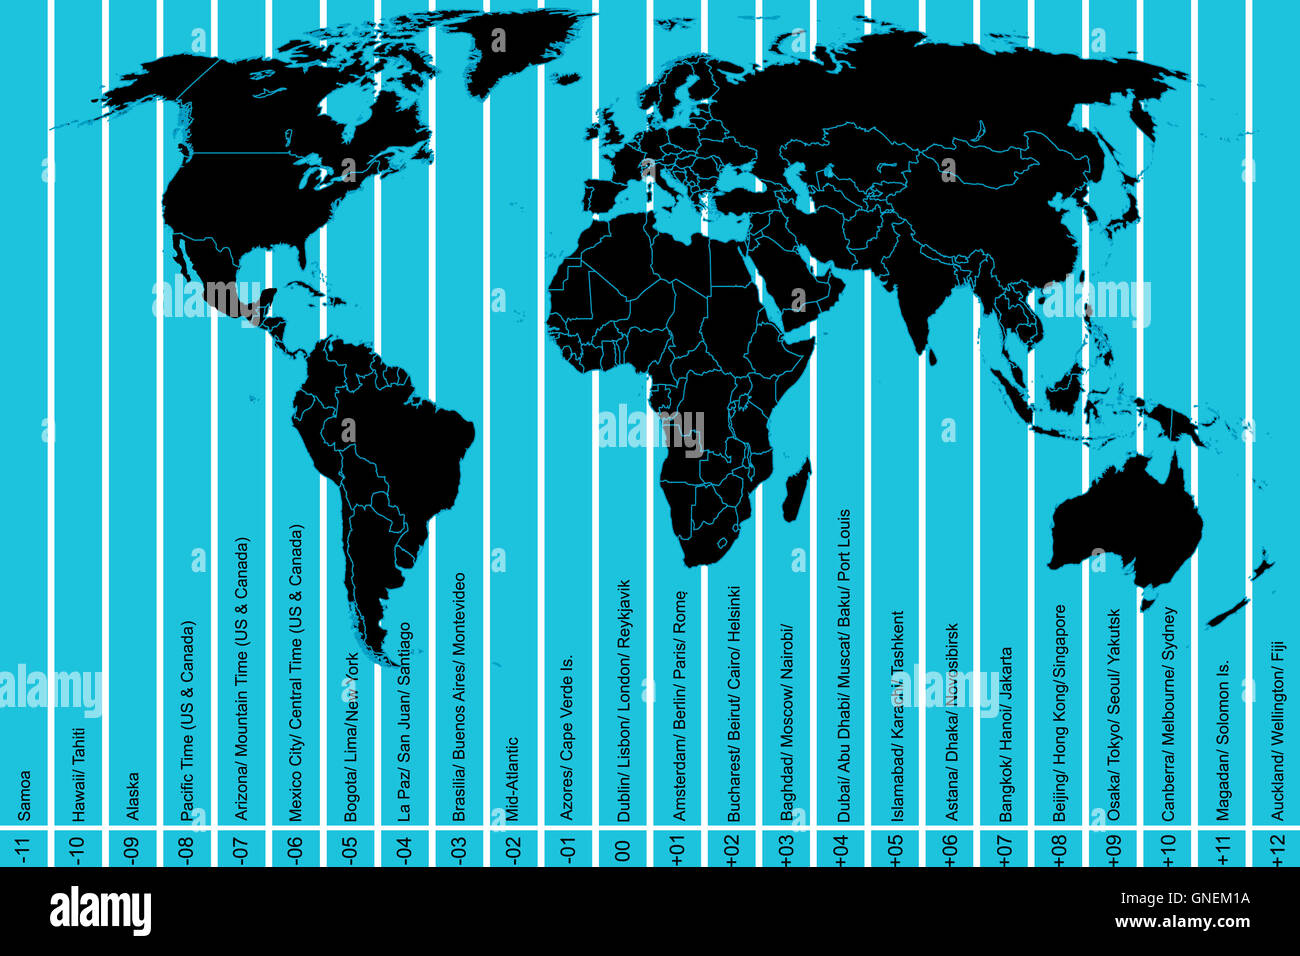 World map and time zones Stock Photo: 116493030 - Alamy on afghanistan time zone, west coast time zone, panama time zone, cuba time zone, east caribbean time zone, ecuador time zone, fiji time zone, oceania time zone, new zealand time zone, norfolk island time zone, indonesia time zone, aleutian time zone, saskatchewan time zone, pacific ocean time zone, georgia time zone, faroe islands time zone, monaco time zone, alaska time zone, portugal time zone, belize time zone,